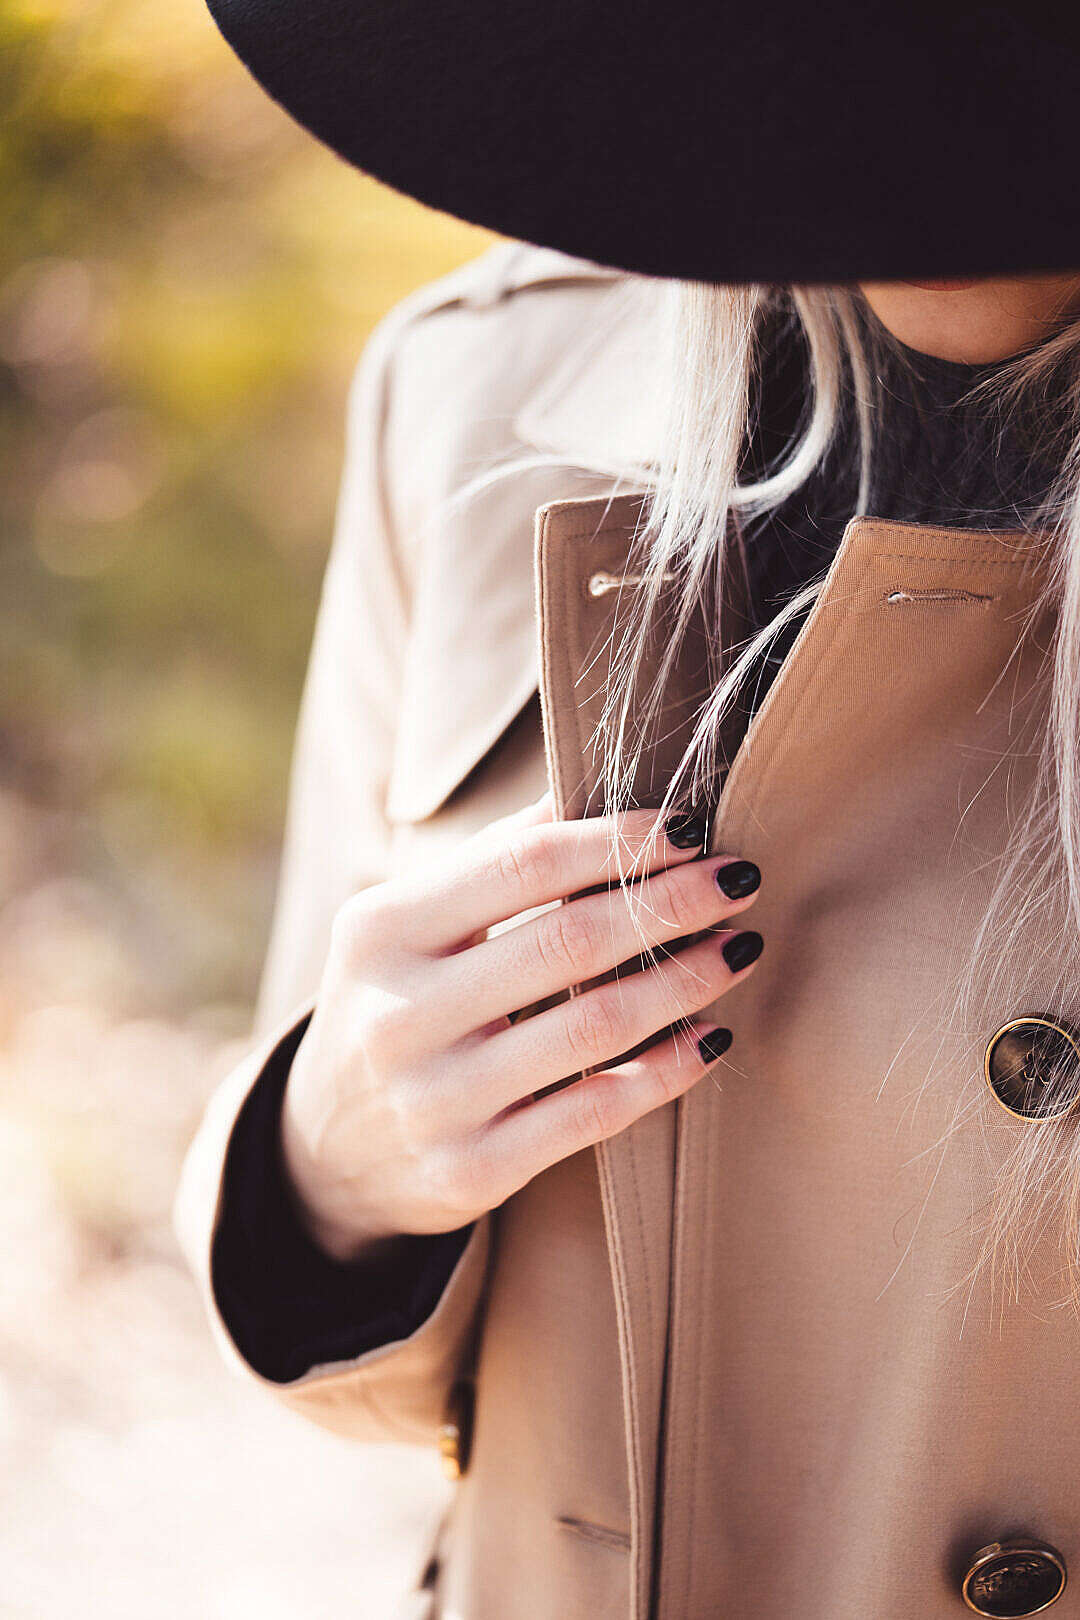 Download Woman in Trench Coat FREE Stock Photo